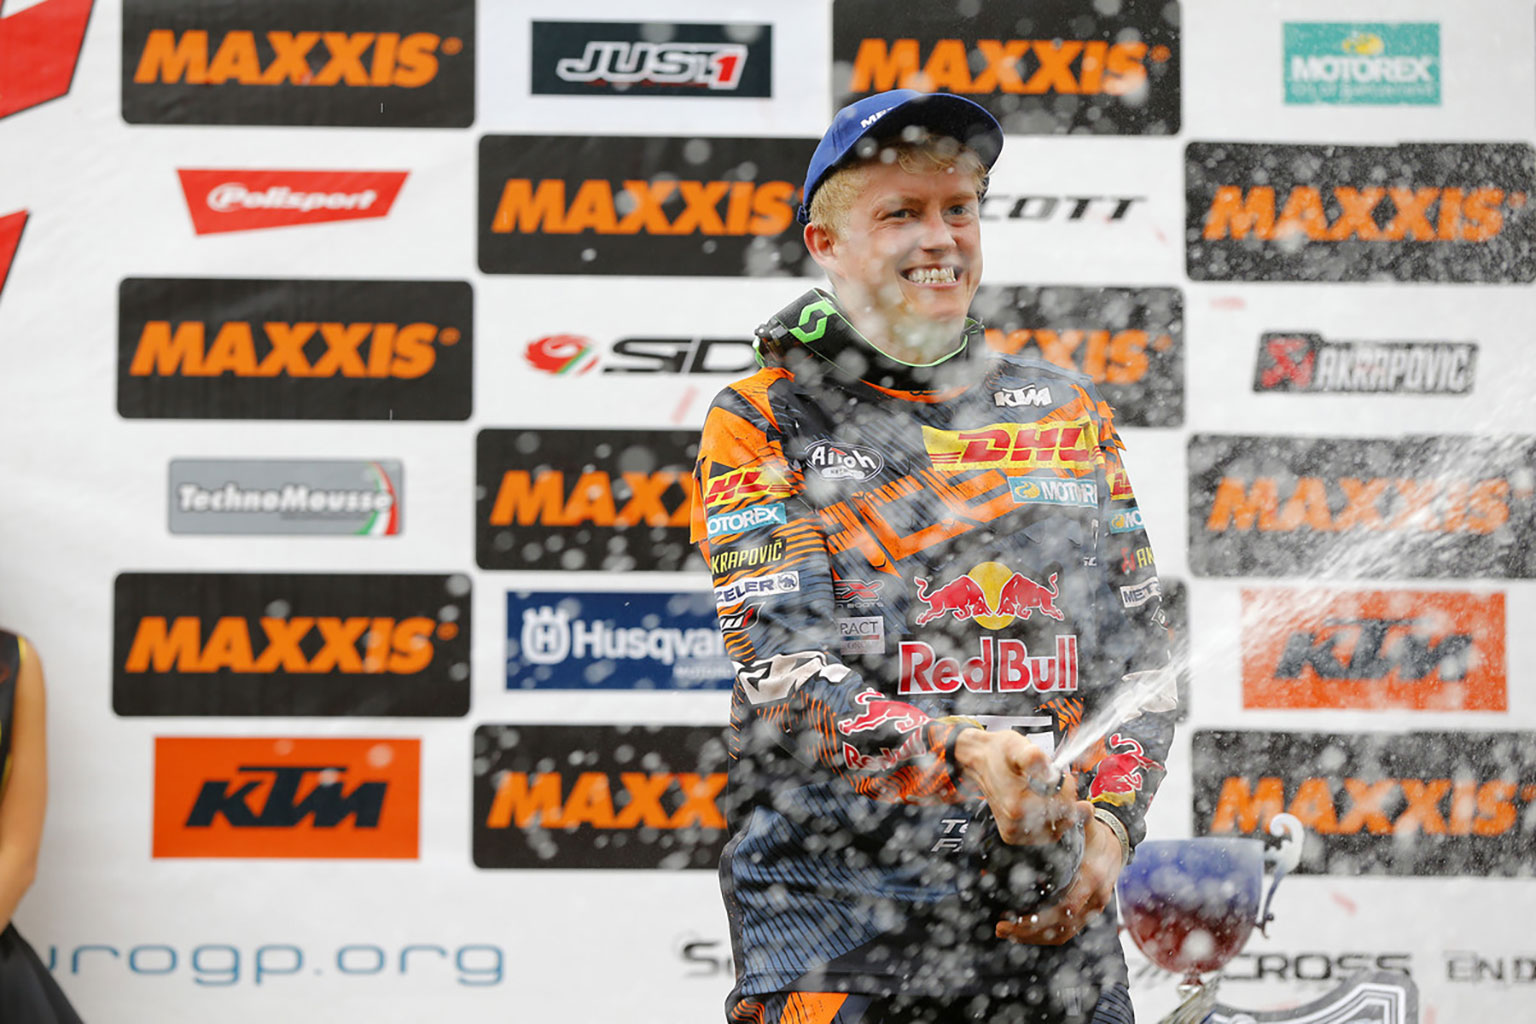 Factory KTM rider Nathan Watson has won both French sand rounds. Pic KTM Images/ Future7 Media